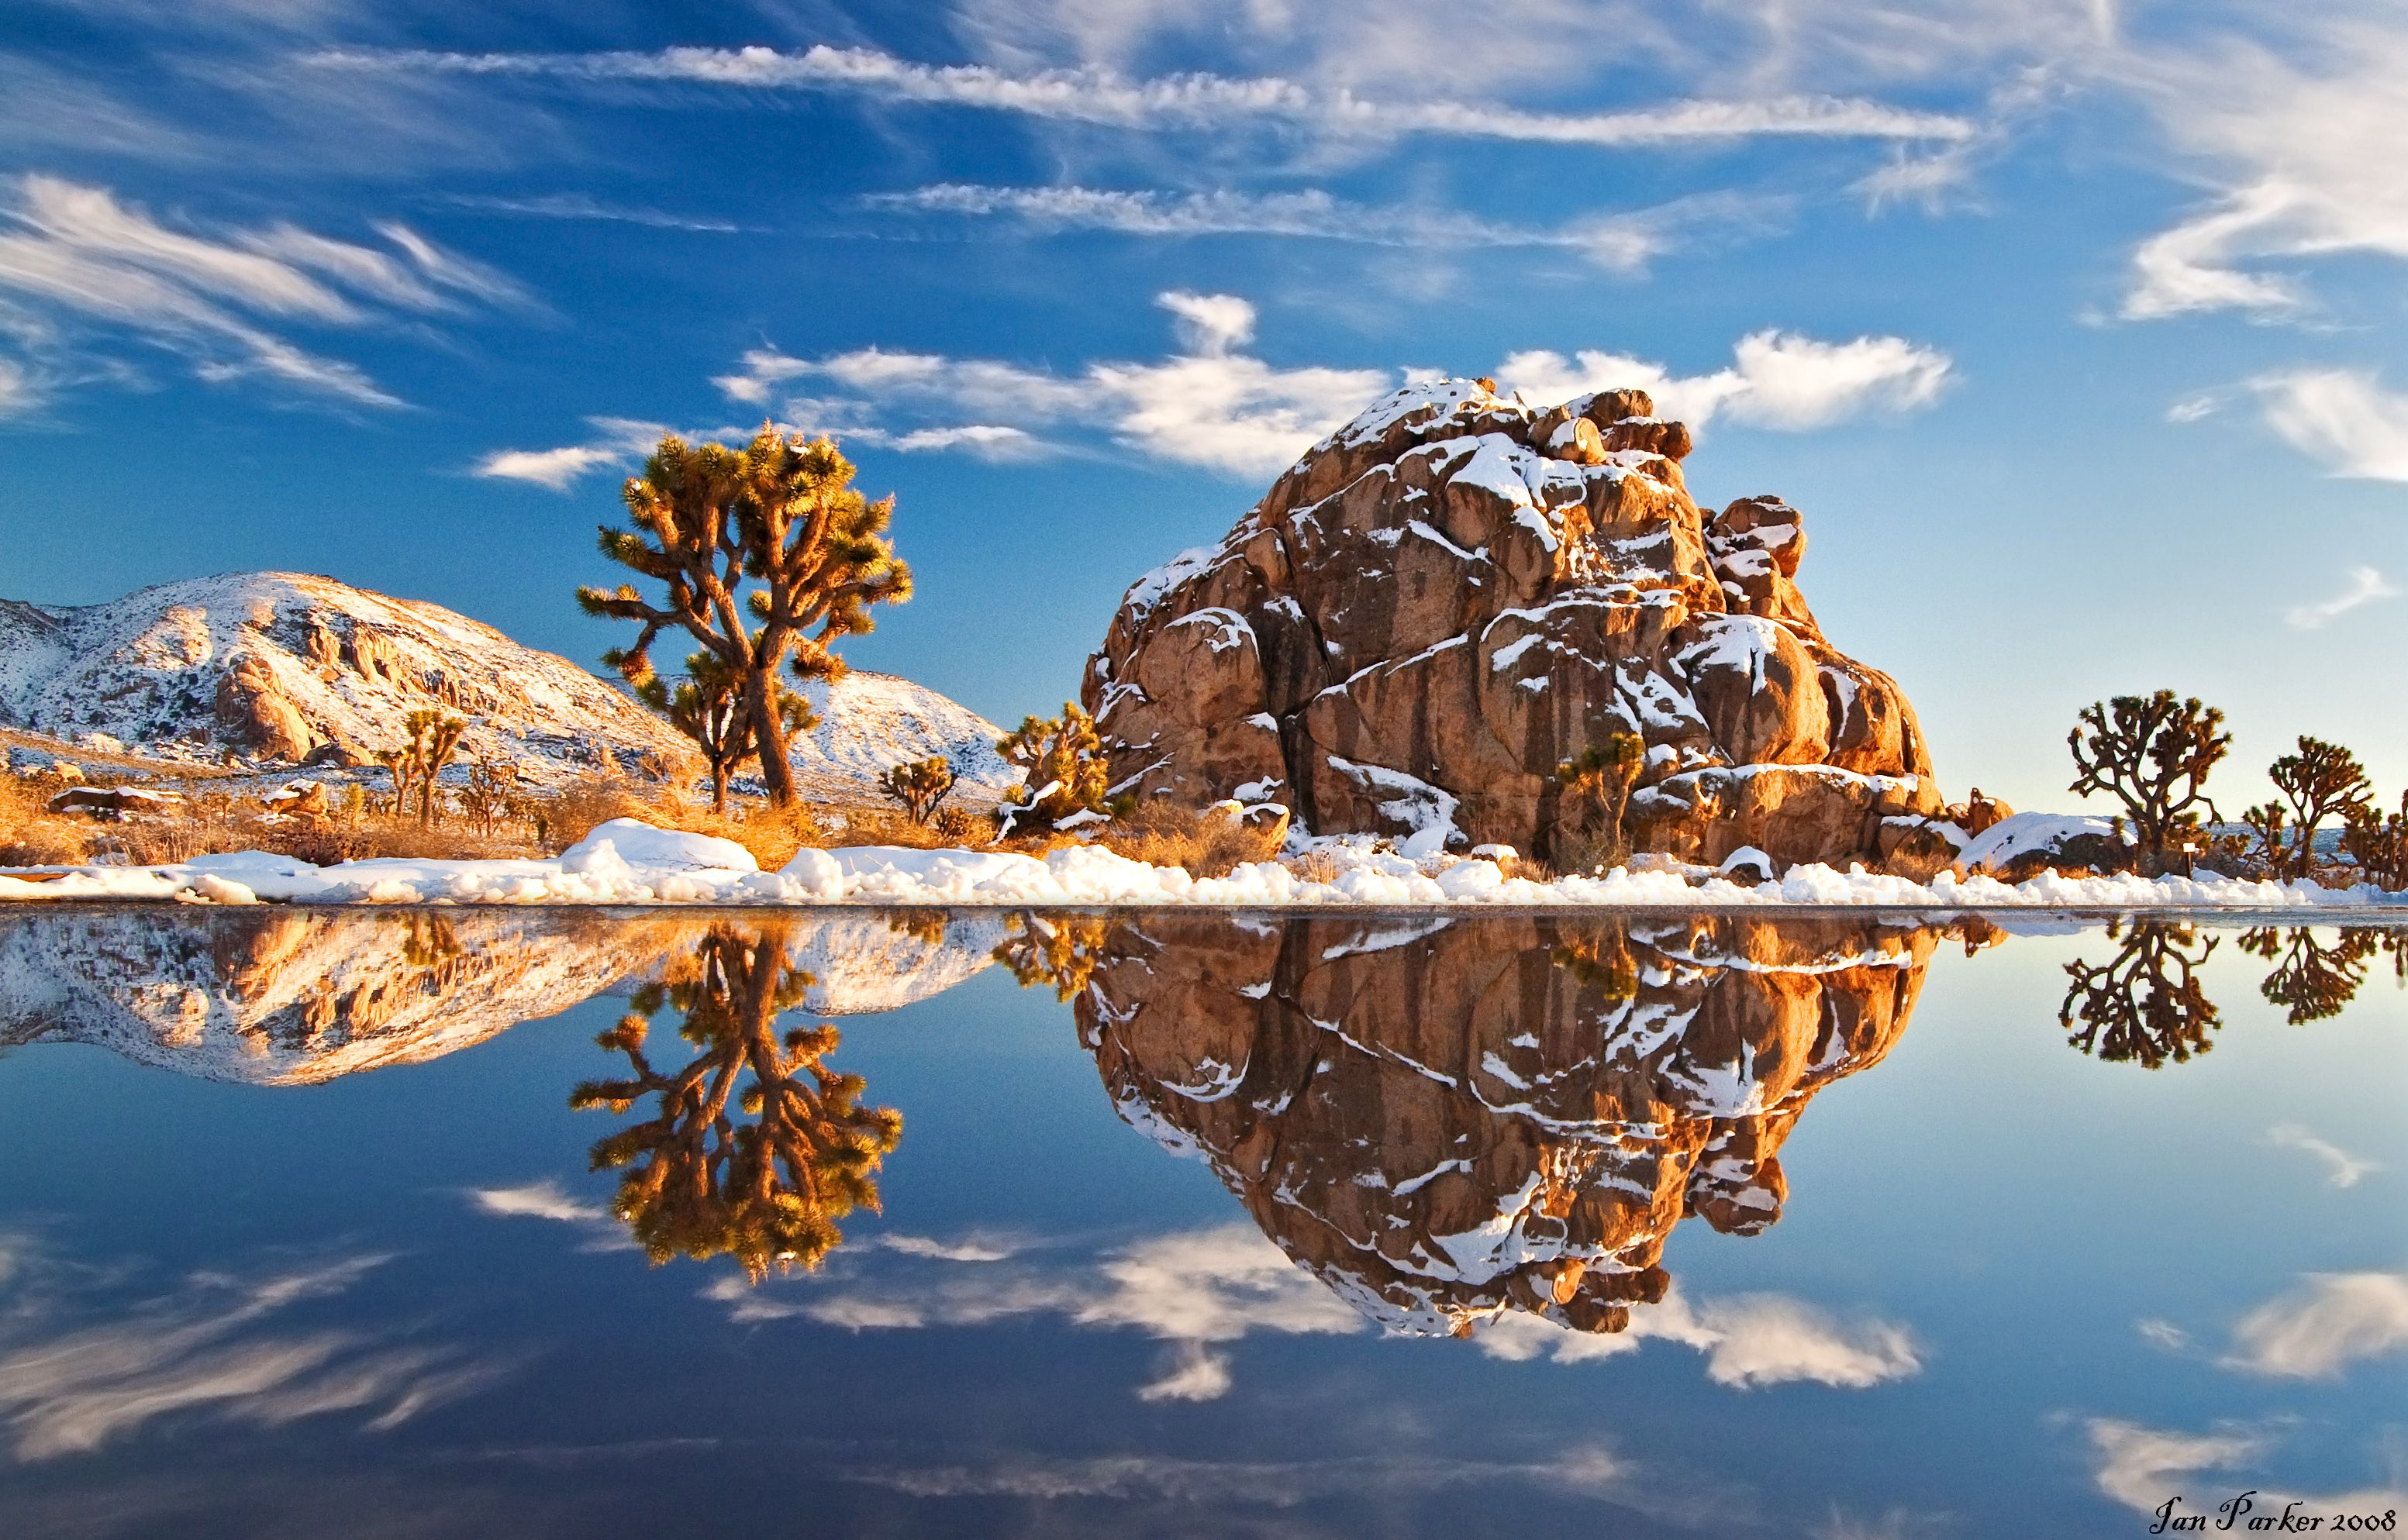 Reflections In Meltwater From The Heaviest Winter Snowfall